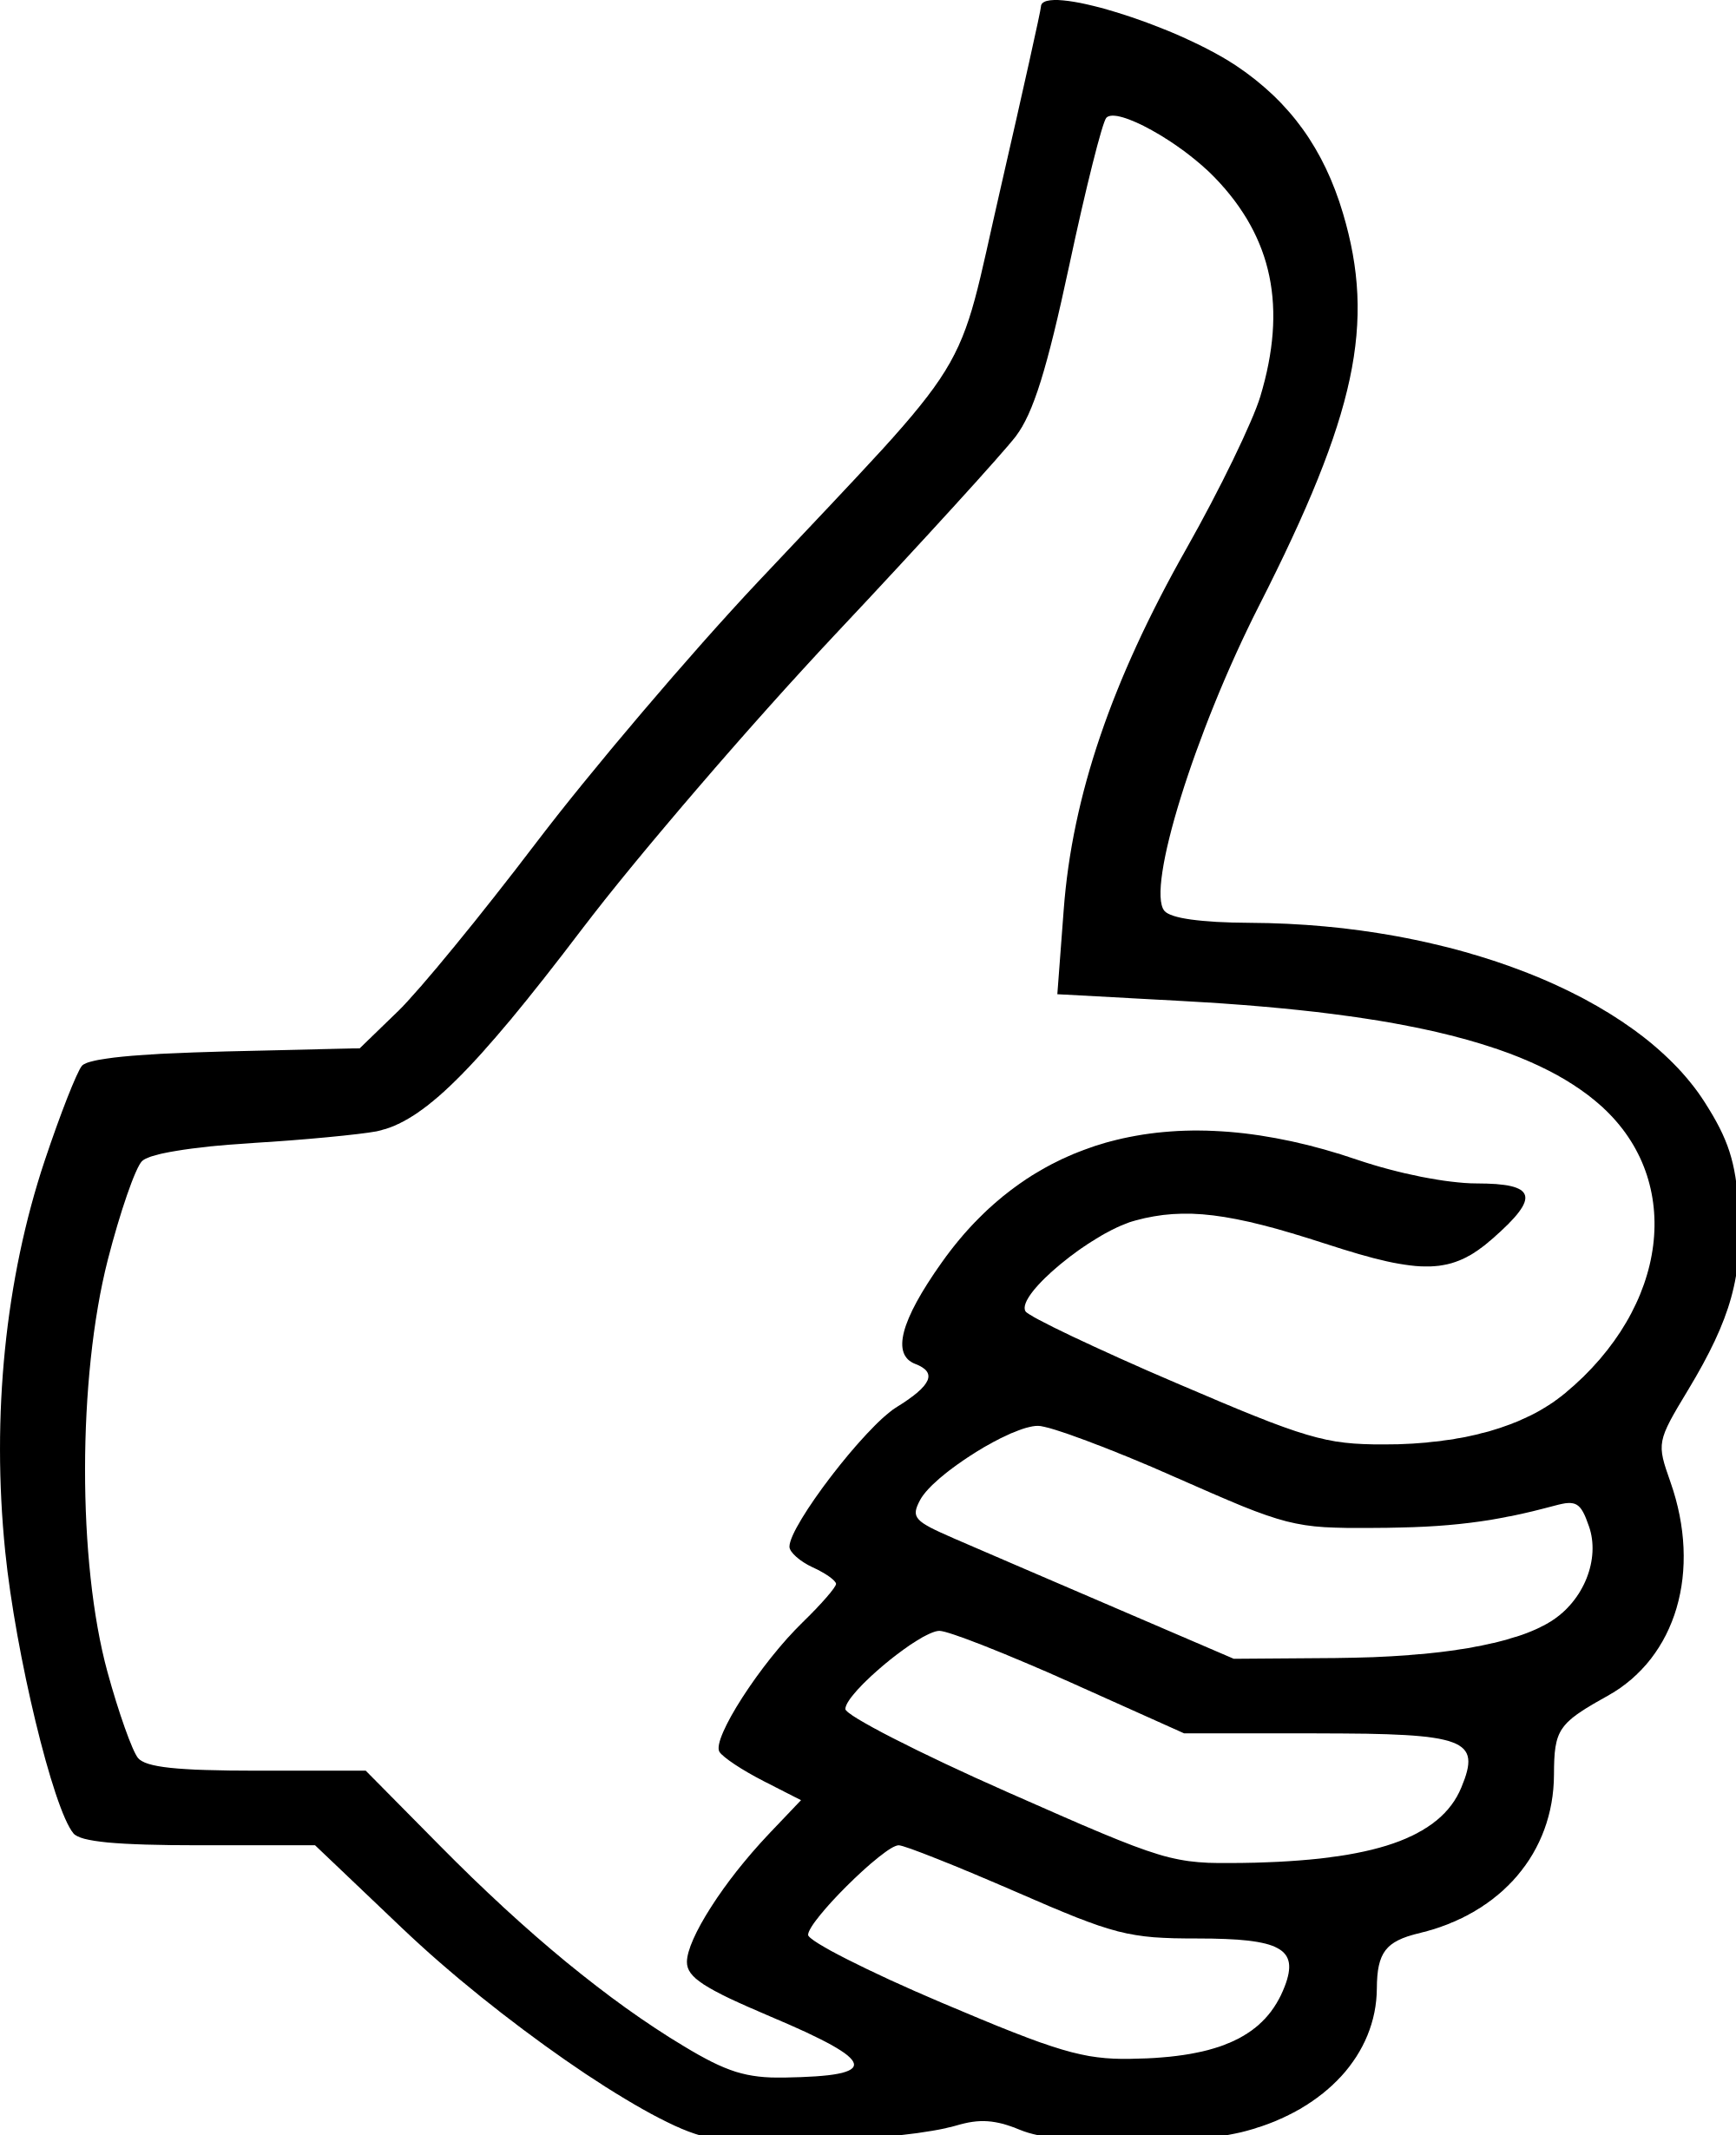 Free Thumbs Up Transparent Download Free Clip Art Free